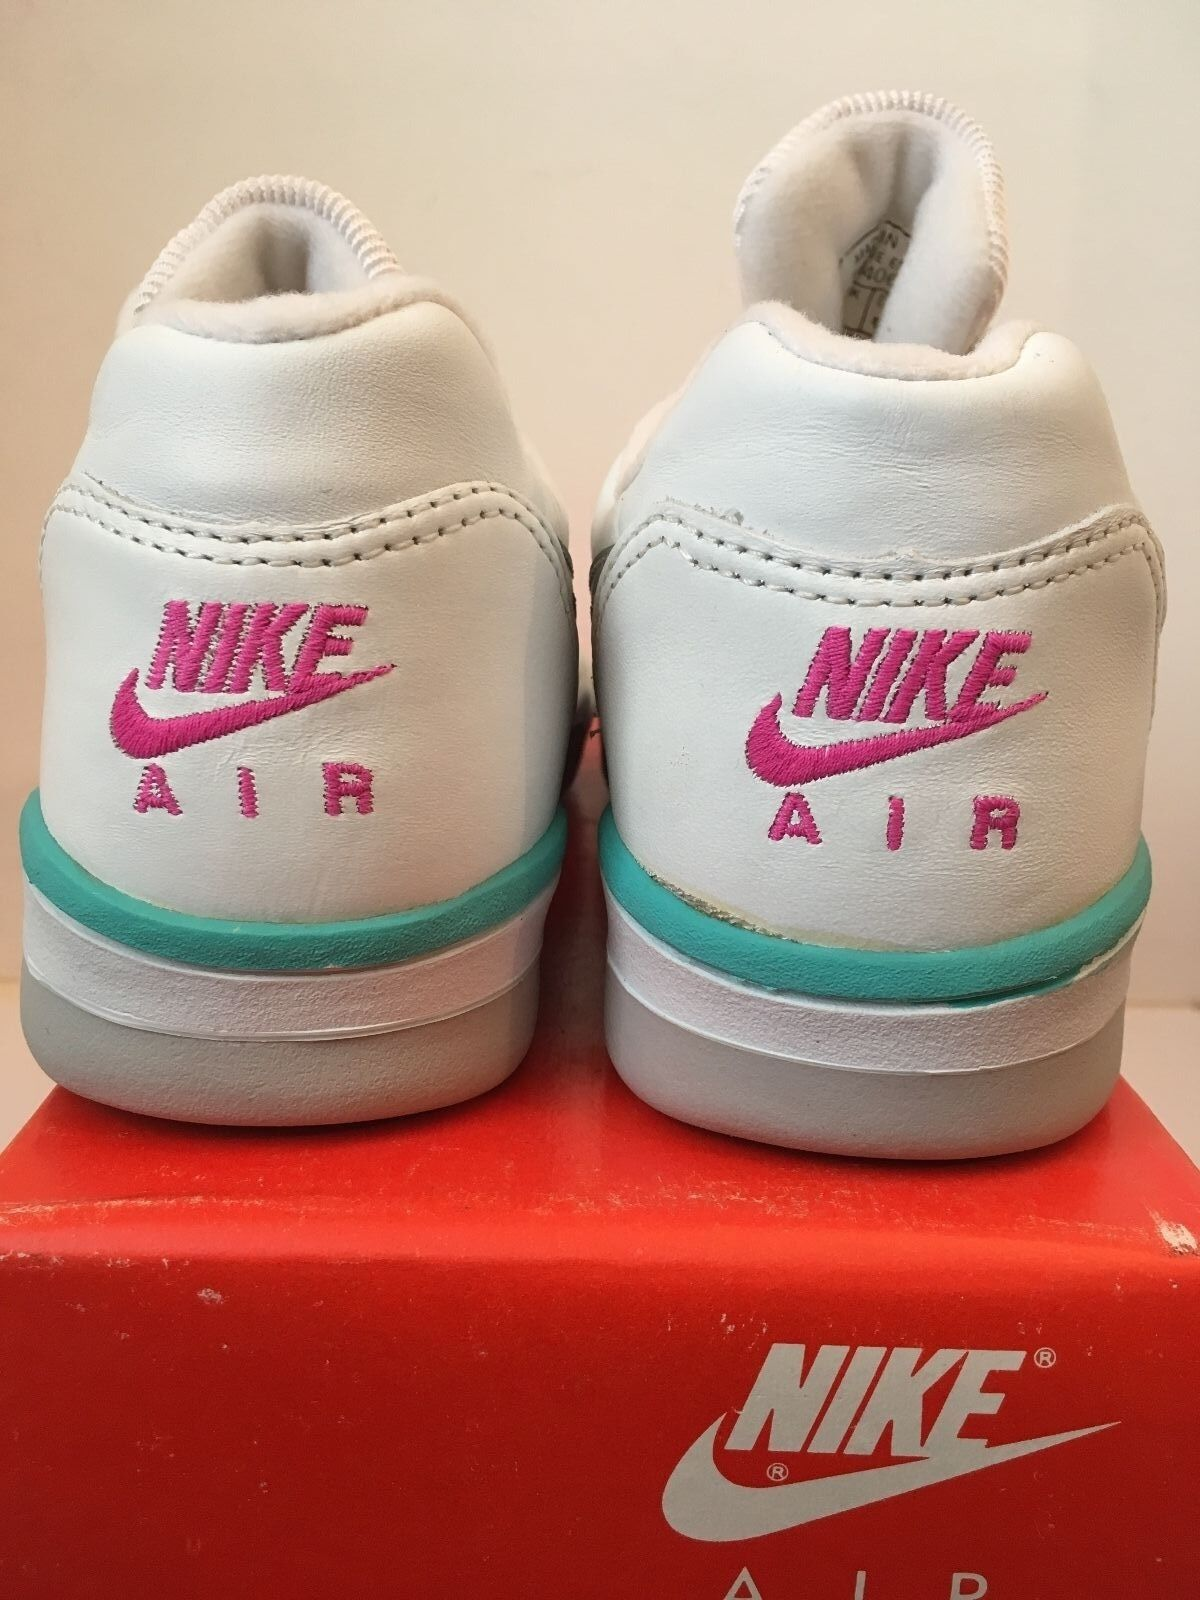 Vintage NIKE AIR  Challenge  Sneakers.....Running, 80s, 80s, 80s, Tennis, 90s, Icarus, Rio b6abbc